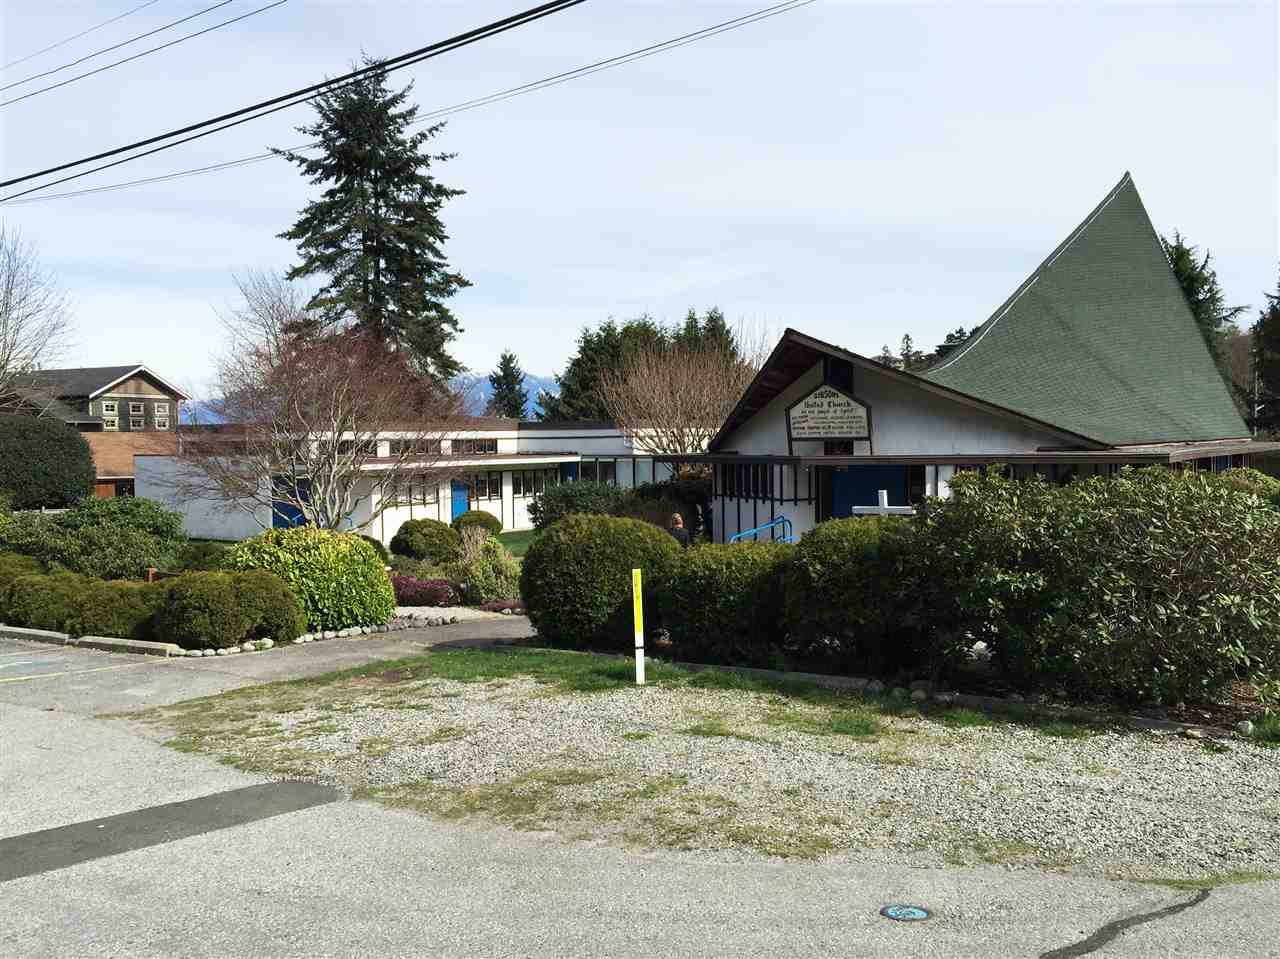 Main Photo: 724 TRUEMAN Road in Gibsons: Gibsons & Area House for sale (Sunshine Coast)  : MLS®# R2049627